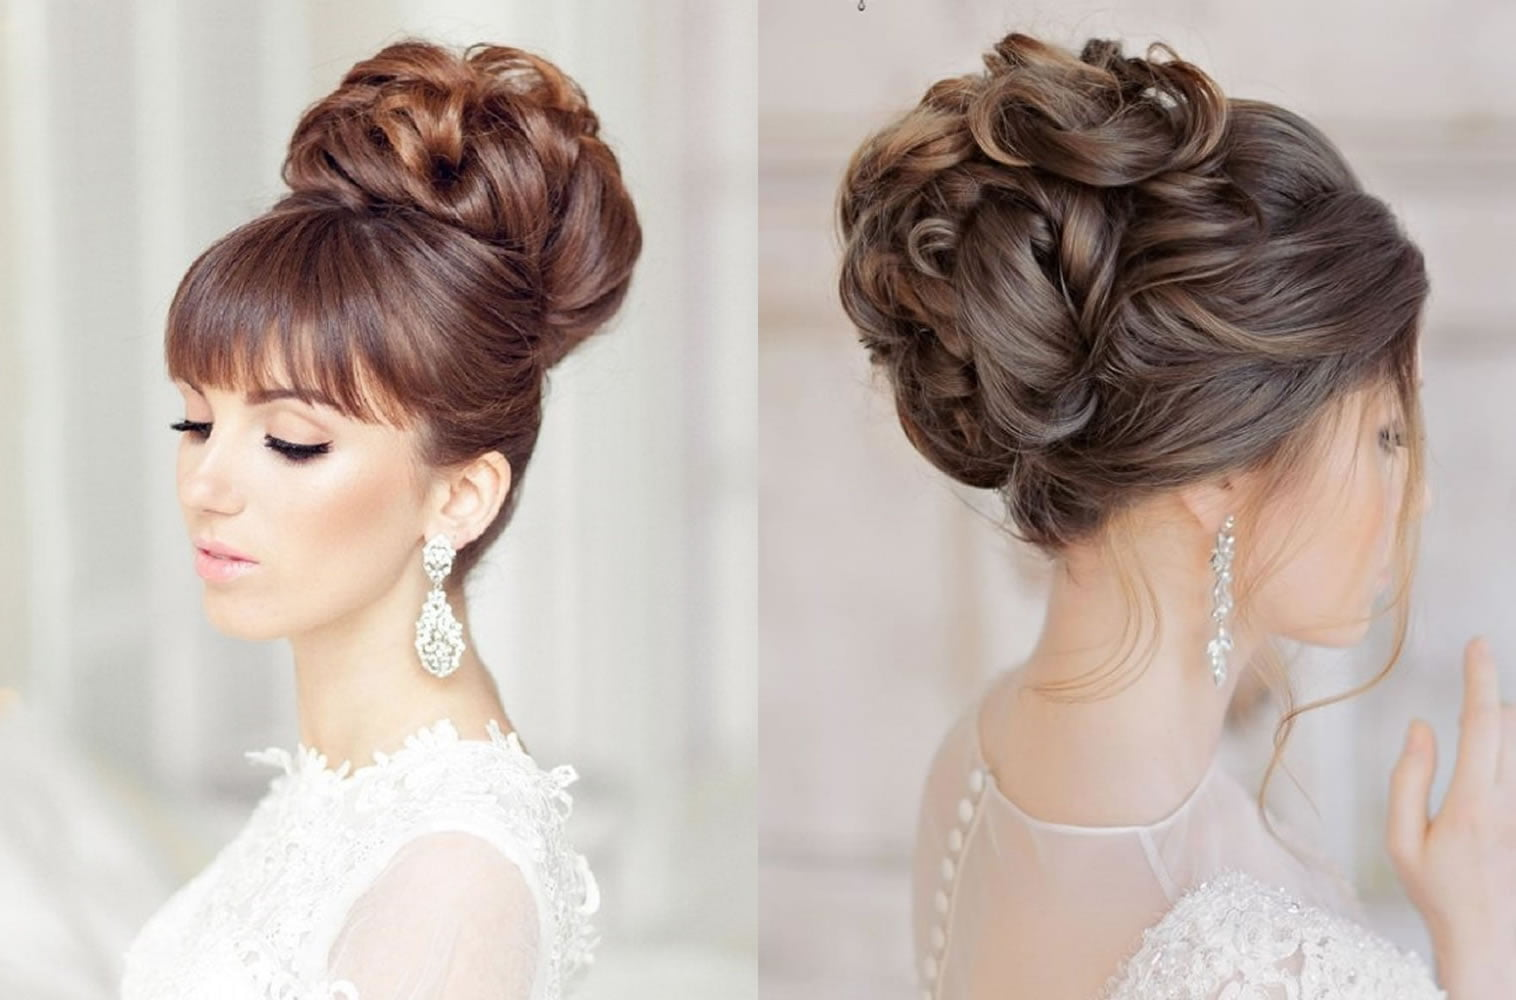 wedding hairstyles down 2019 - Hair Colors